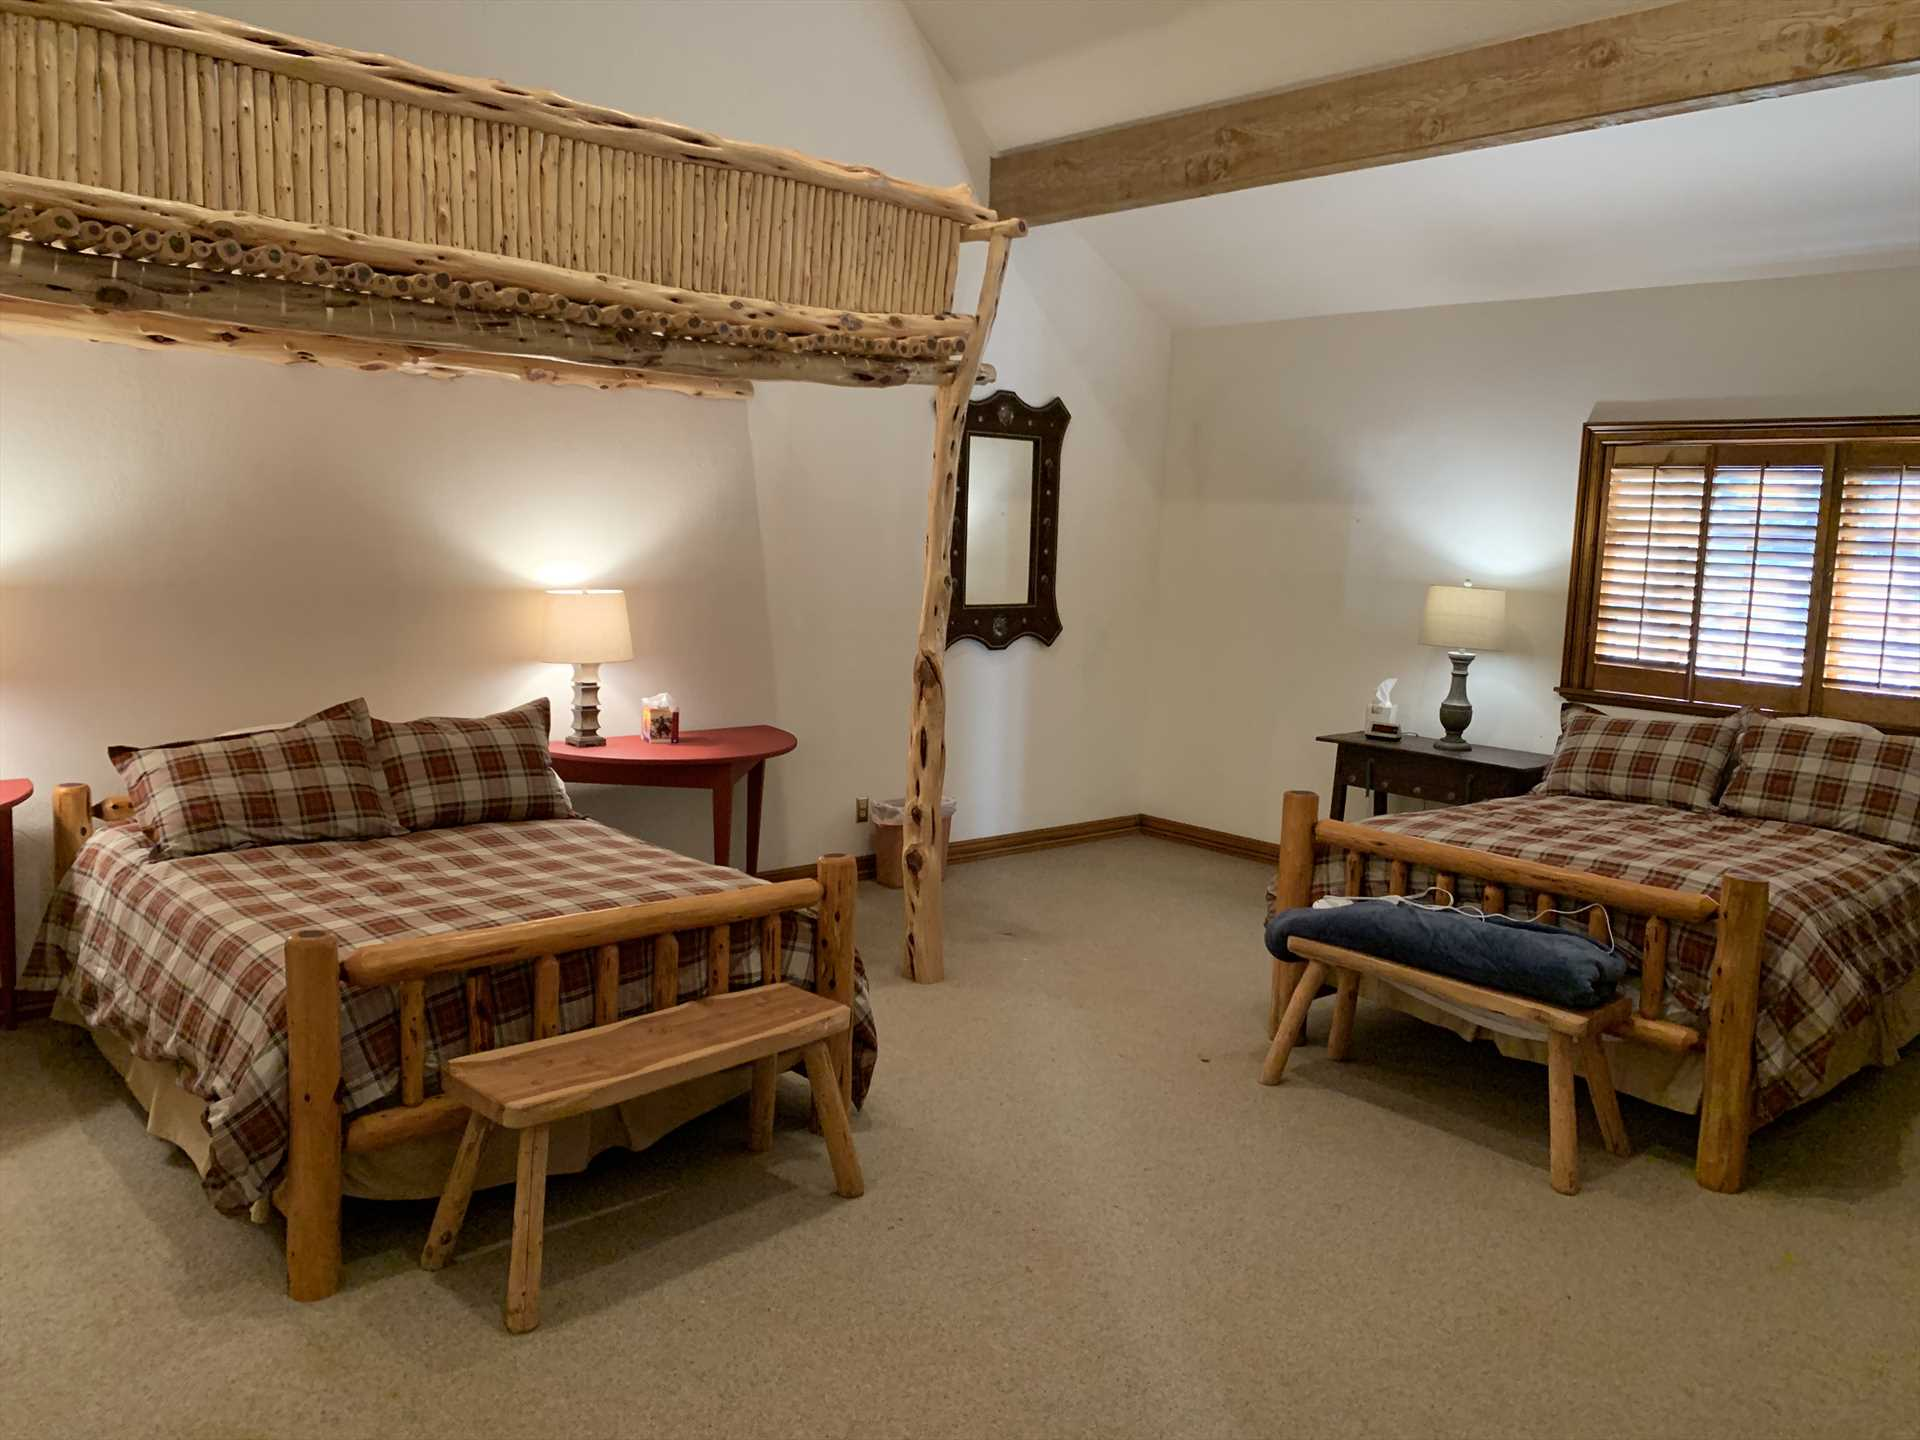 With eight beds total, the Homestead offers blissful slumber for up to 14 people-and all the beds and baths on the property come with complimentary clean linens.